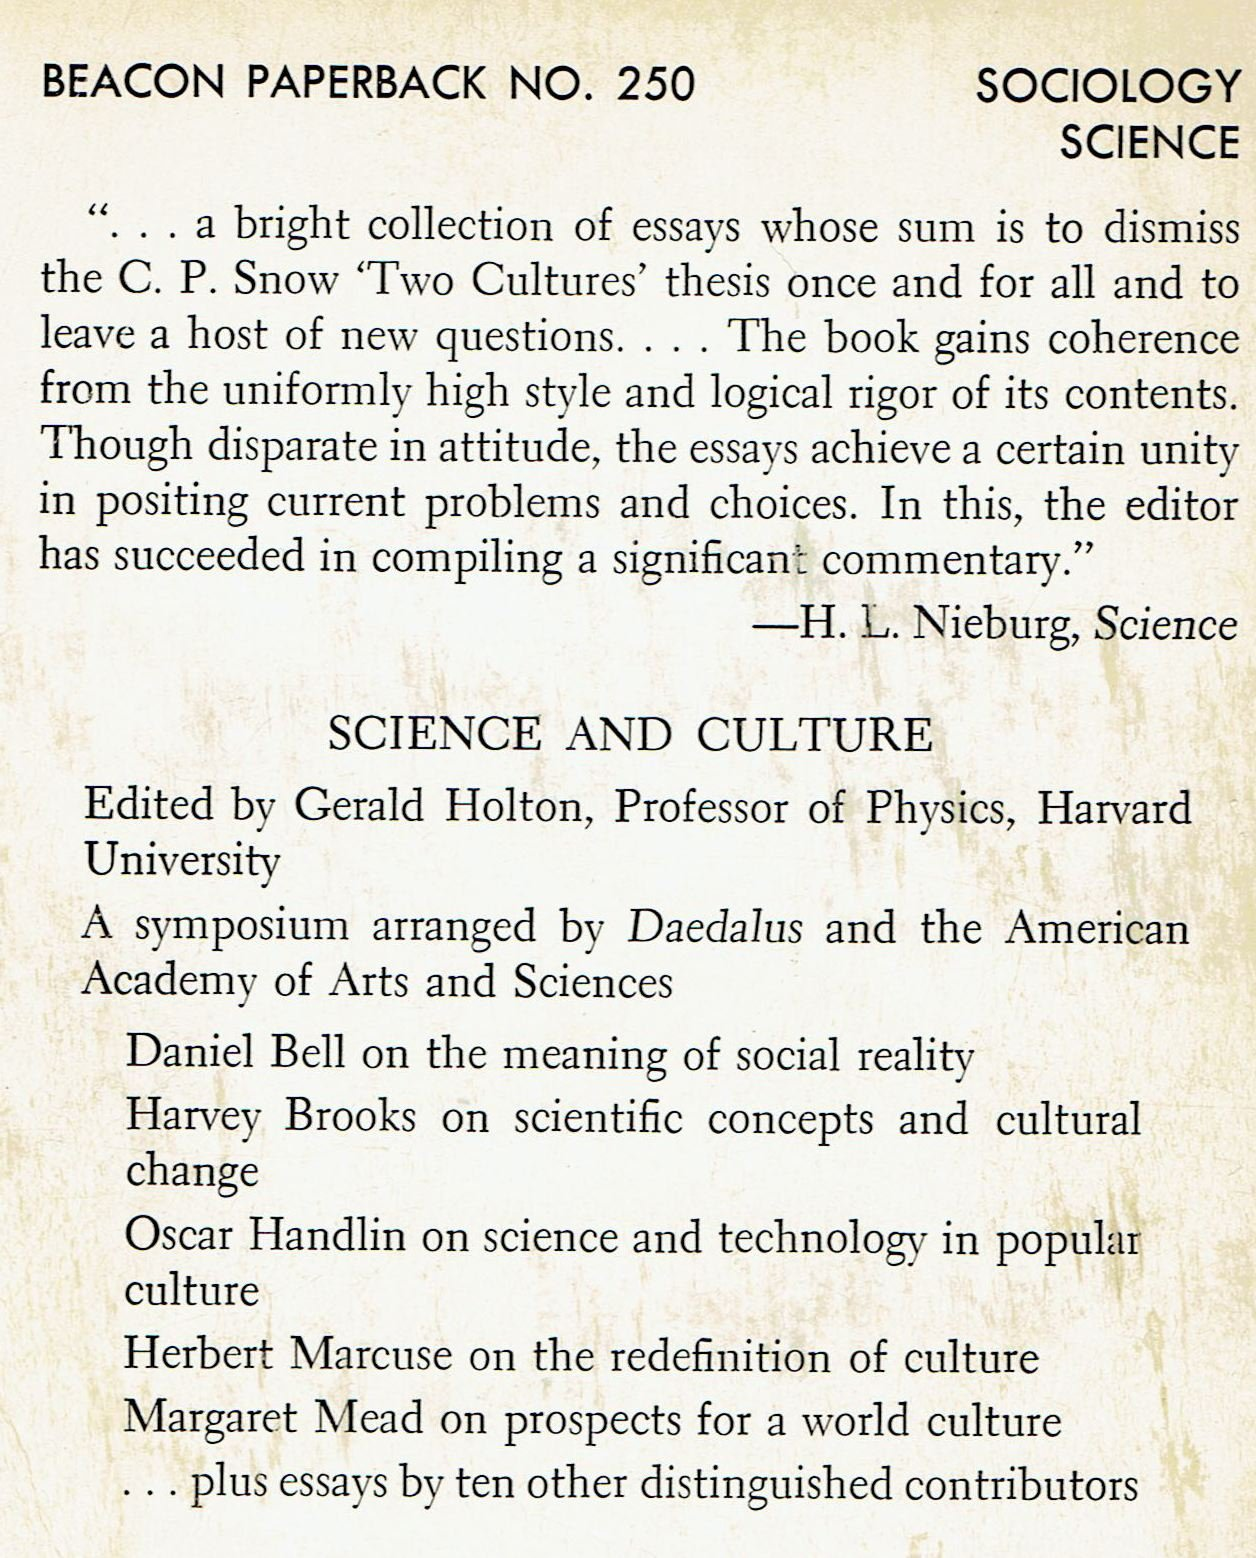 Good Persuasive Essay Topics For High School Science And Culture  A Study Of Cohesive And Disjunctive Forces Gerald  Holten  Amazoncom Books Science Essay Questions also Persuasive Essay Samples For High School Science And Culture  A Study Of Cohesive And Disjunctive Forces  Small Essays In English